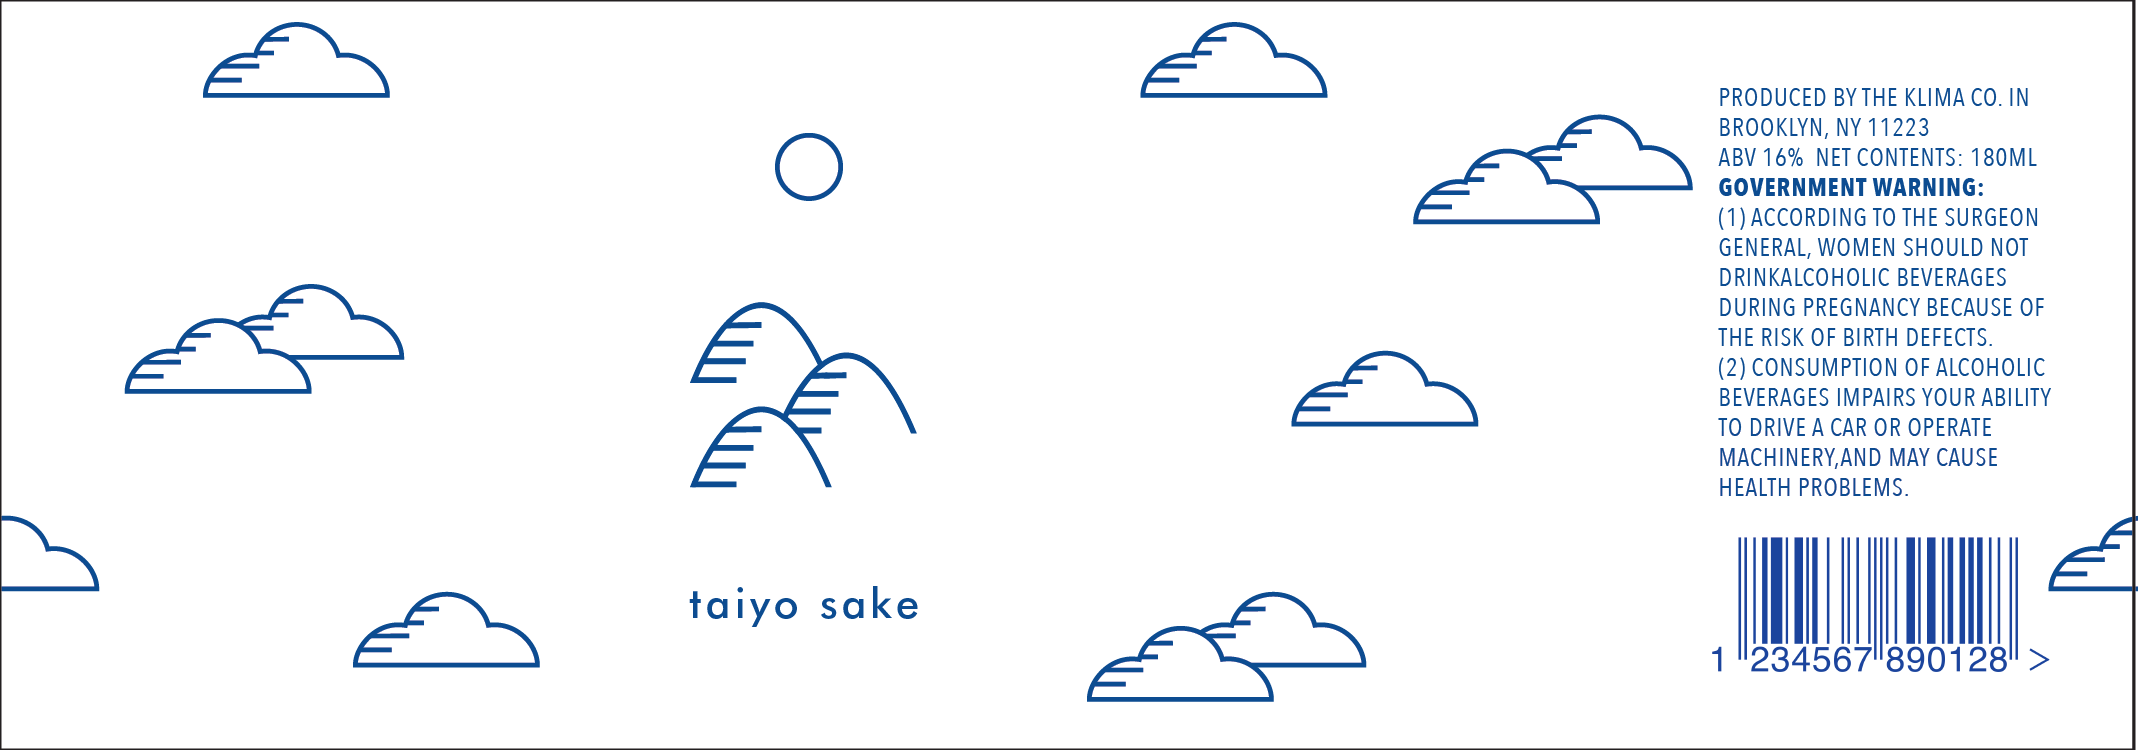 taiyosake_folio_label_forwebsite-01.png